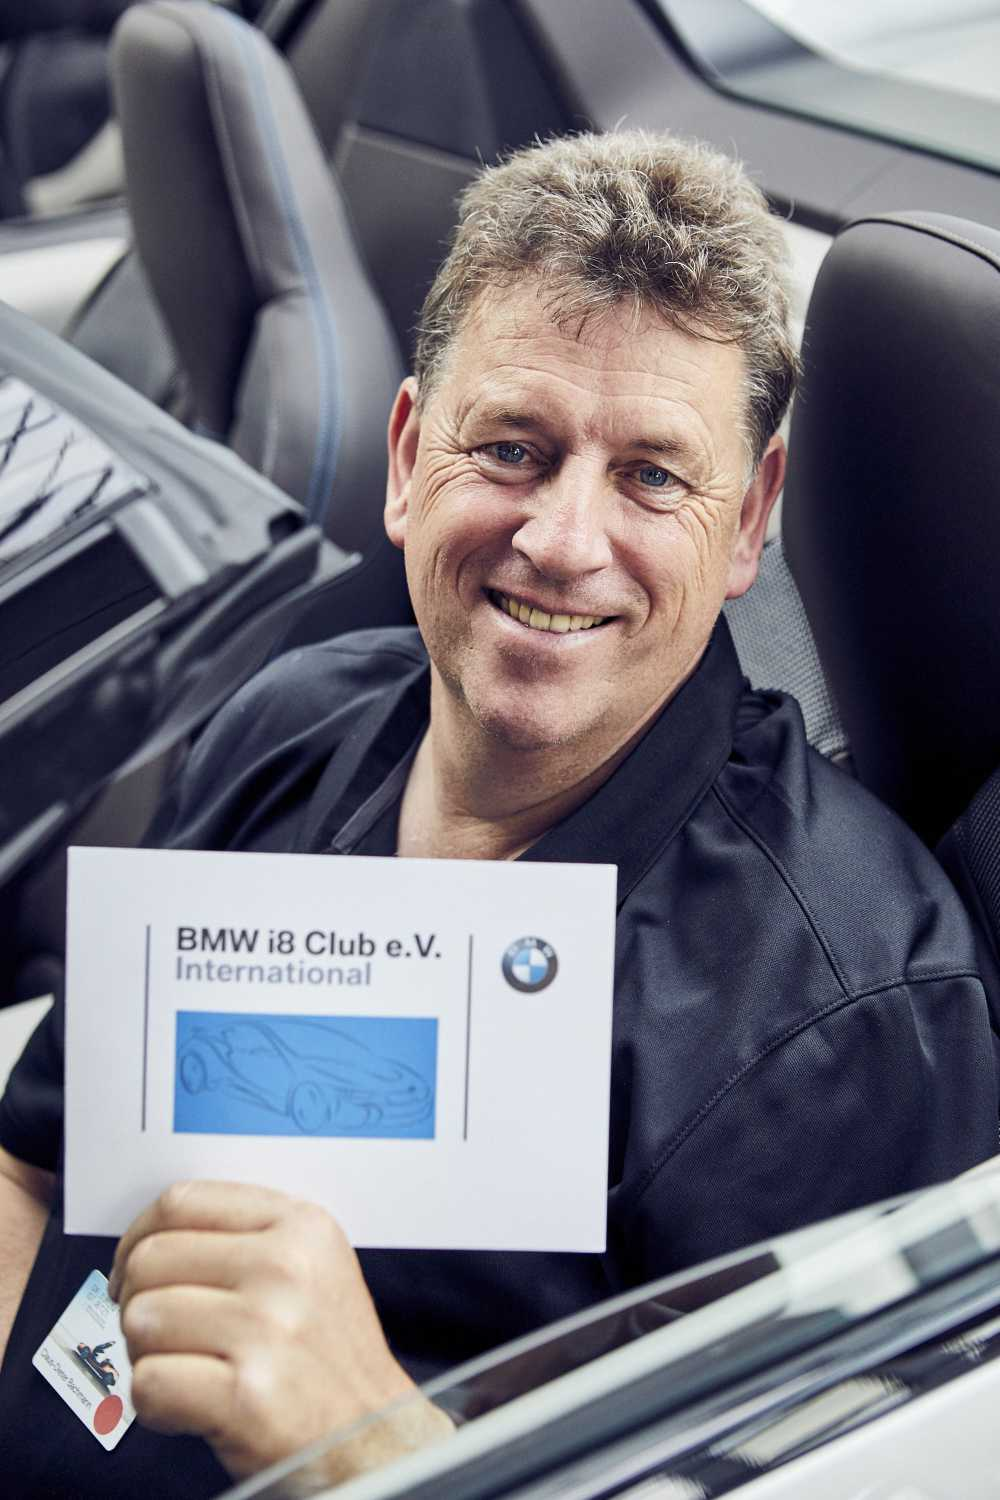 """Handover of 18 of the first BMW i8 Roadsters in the strictly limited """"First Edition"""" to the international BMW i8 Club at BMW Welt in Munich. Claus-Dieter Bachmann, president of the BMW i8 Club. (05/2018)"""